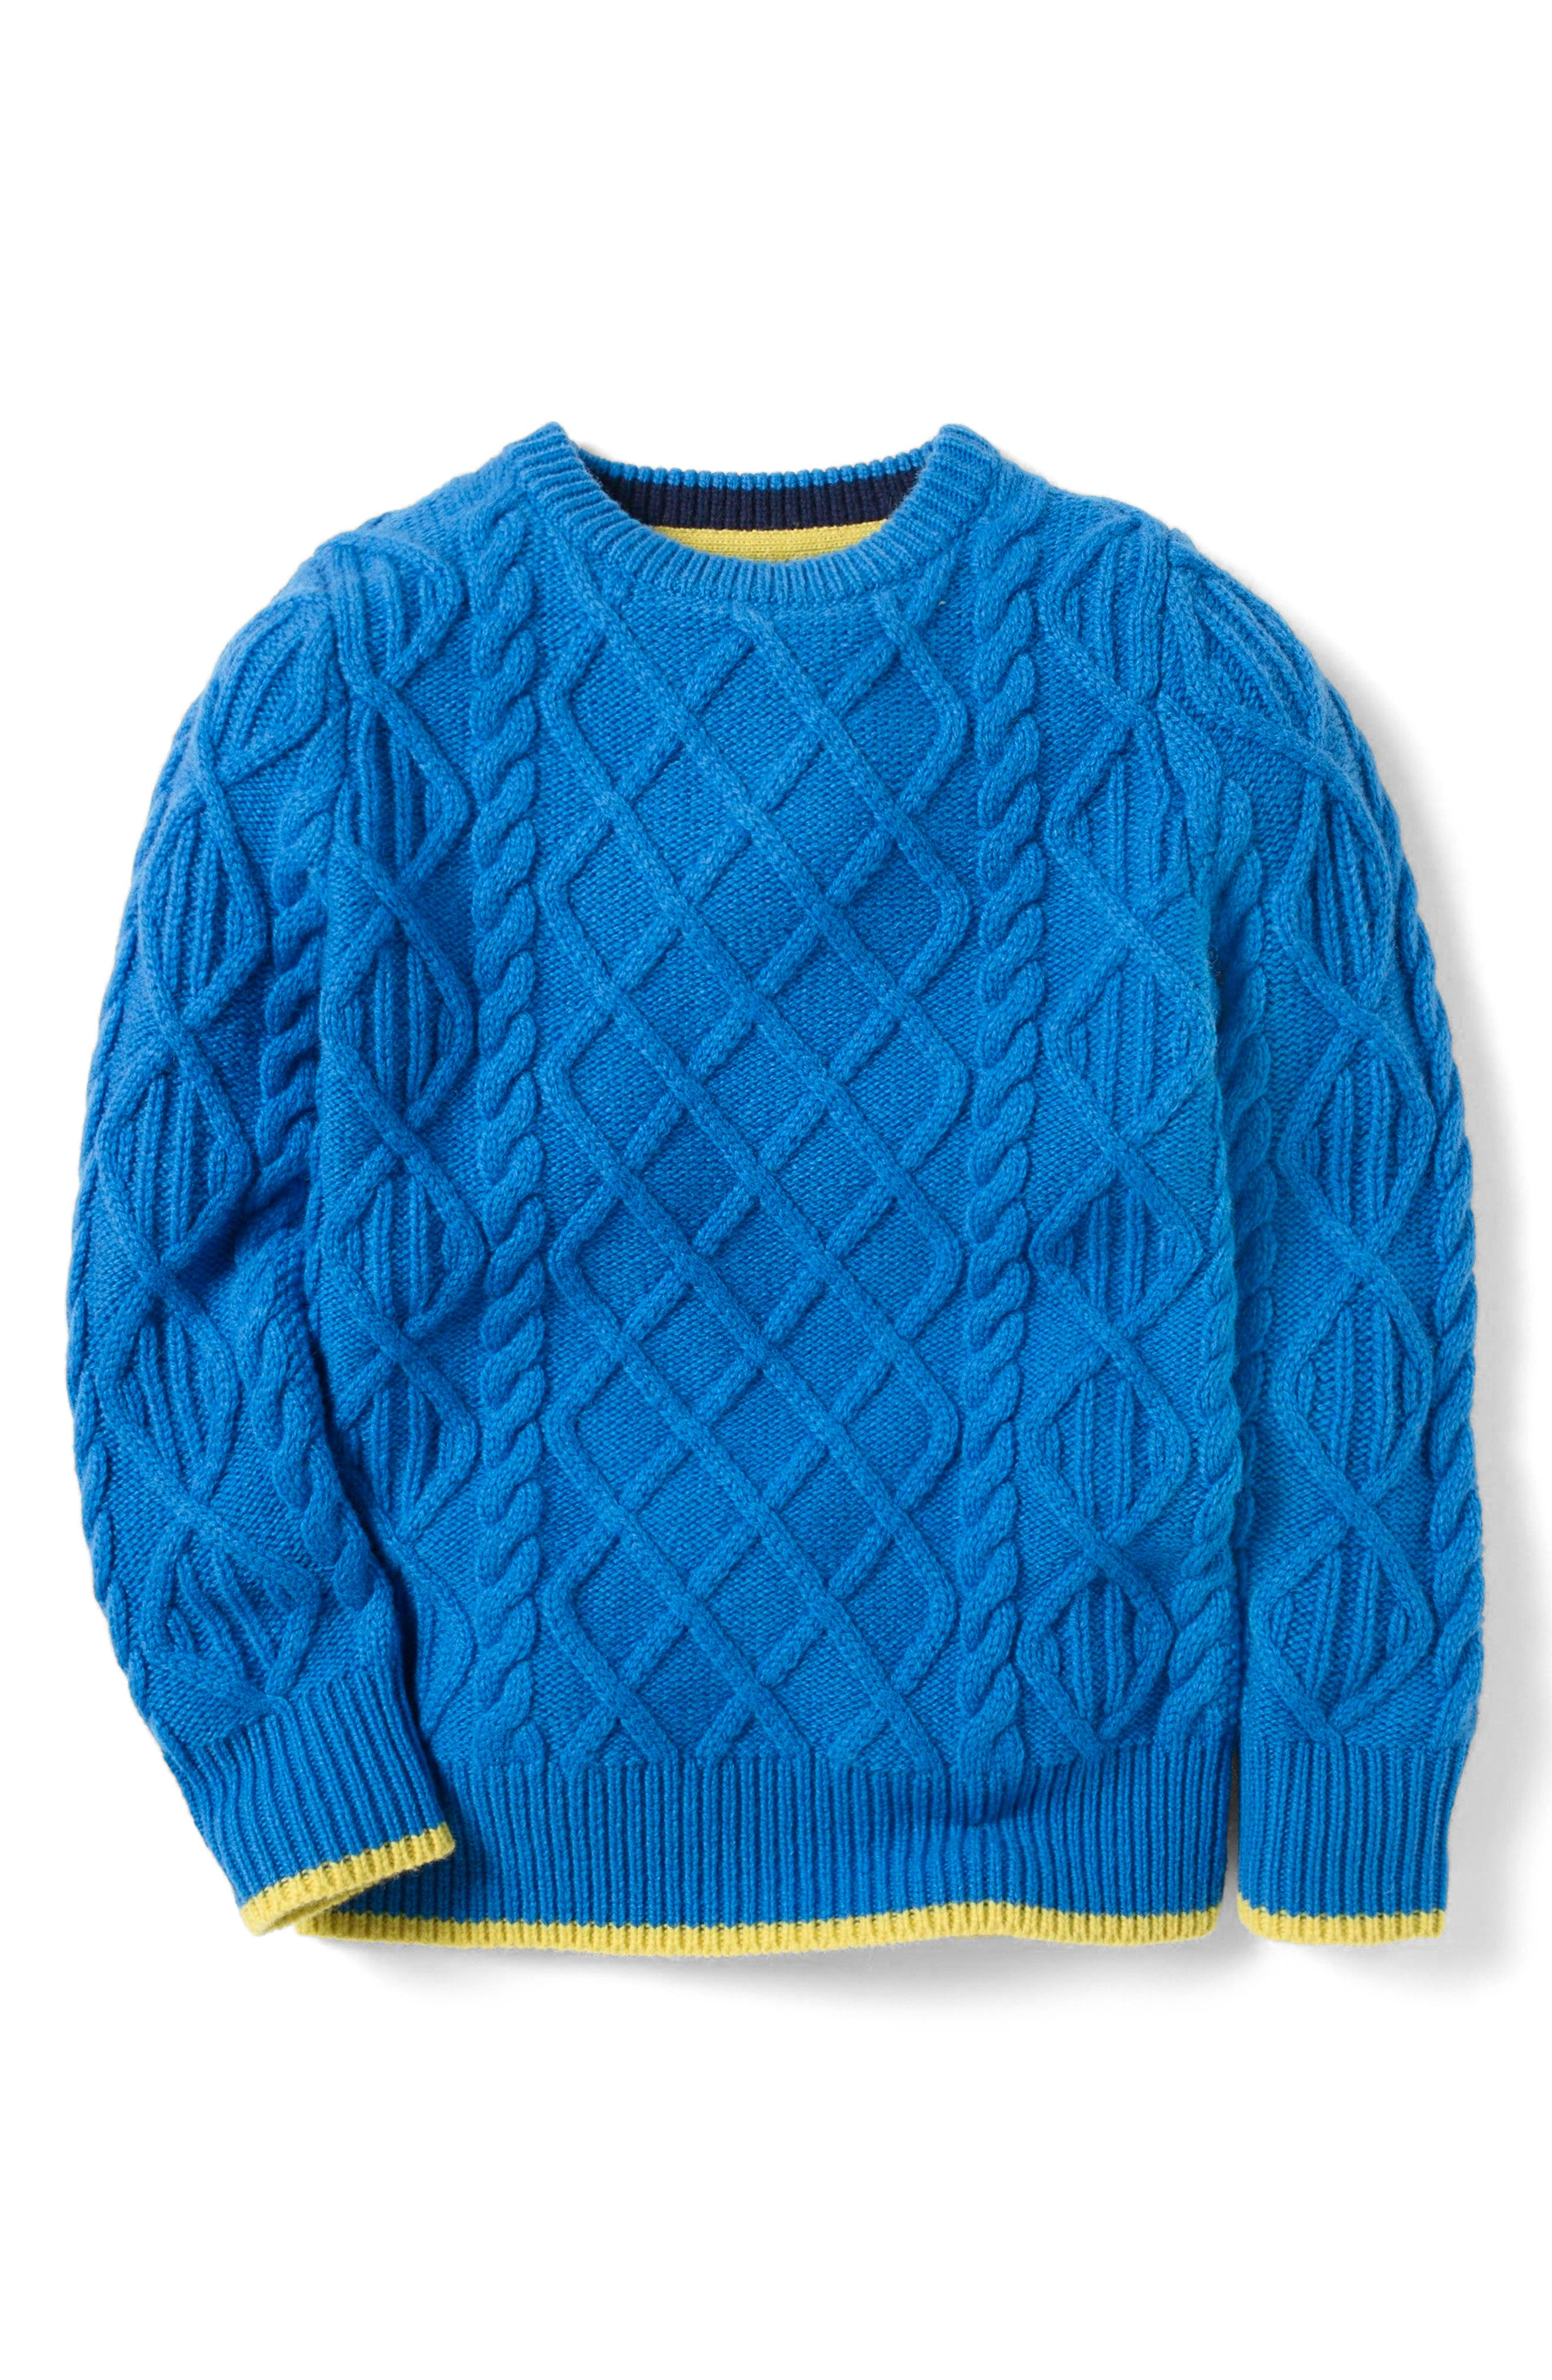 Main Image - Mini Boden Cable Wool Sweater (Toddler Boys, Little Boys & Big Boys)